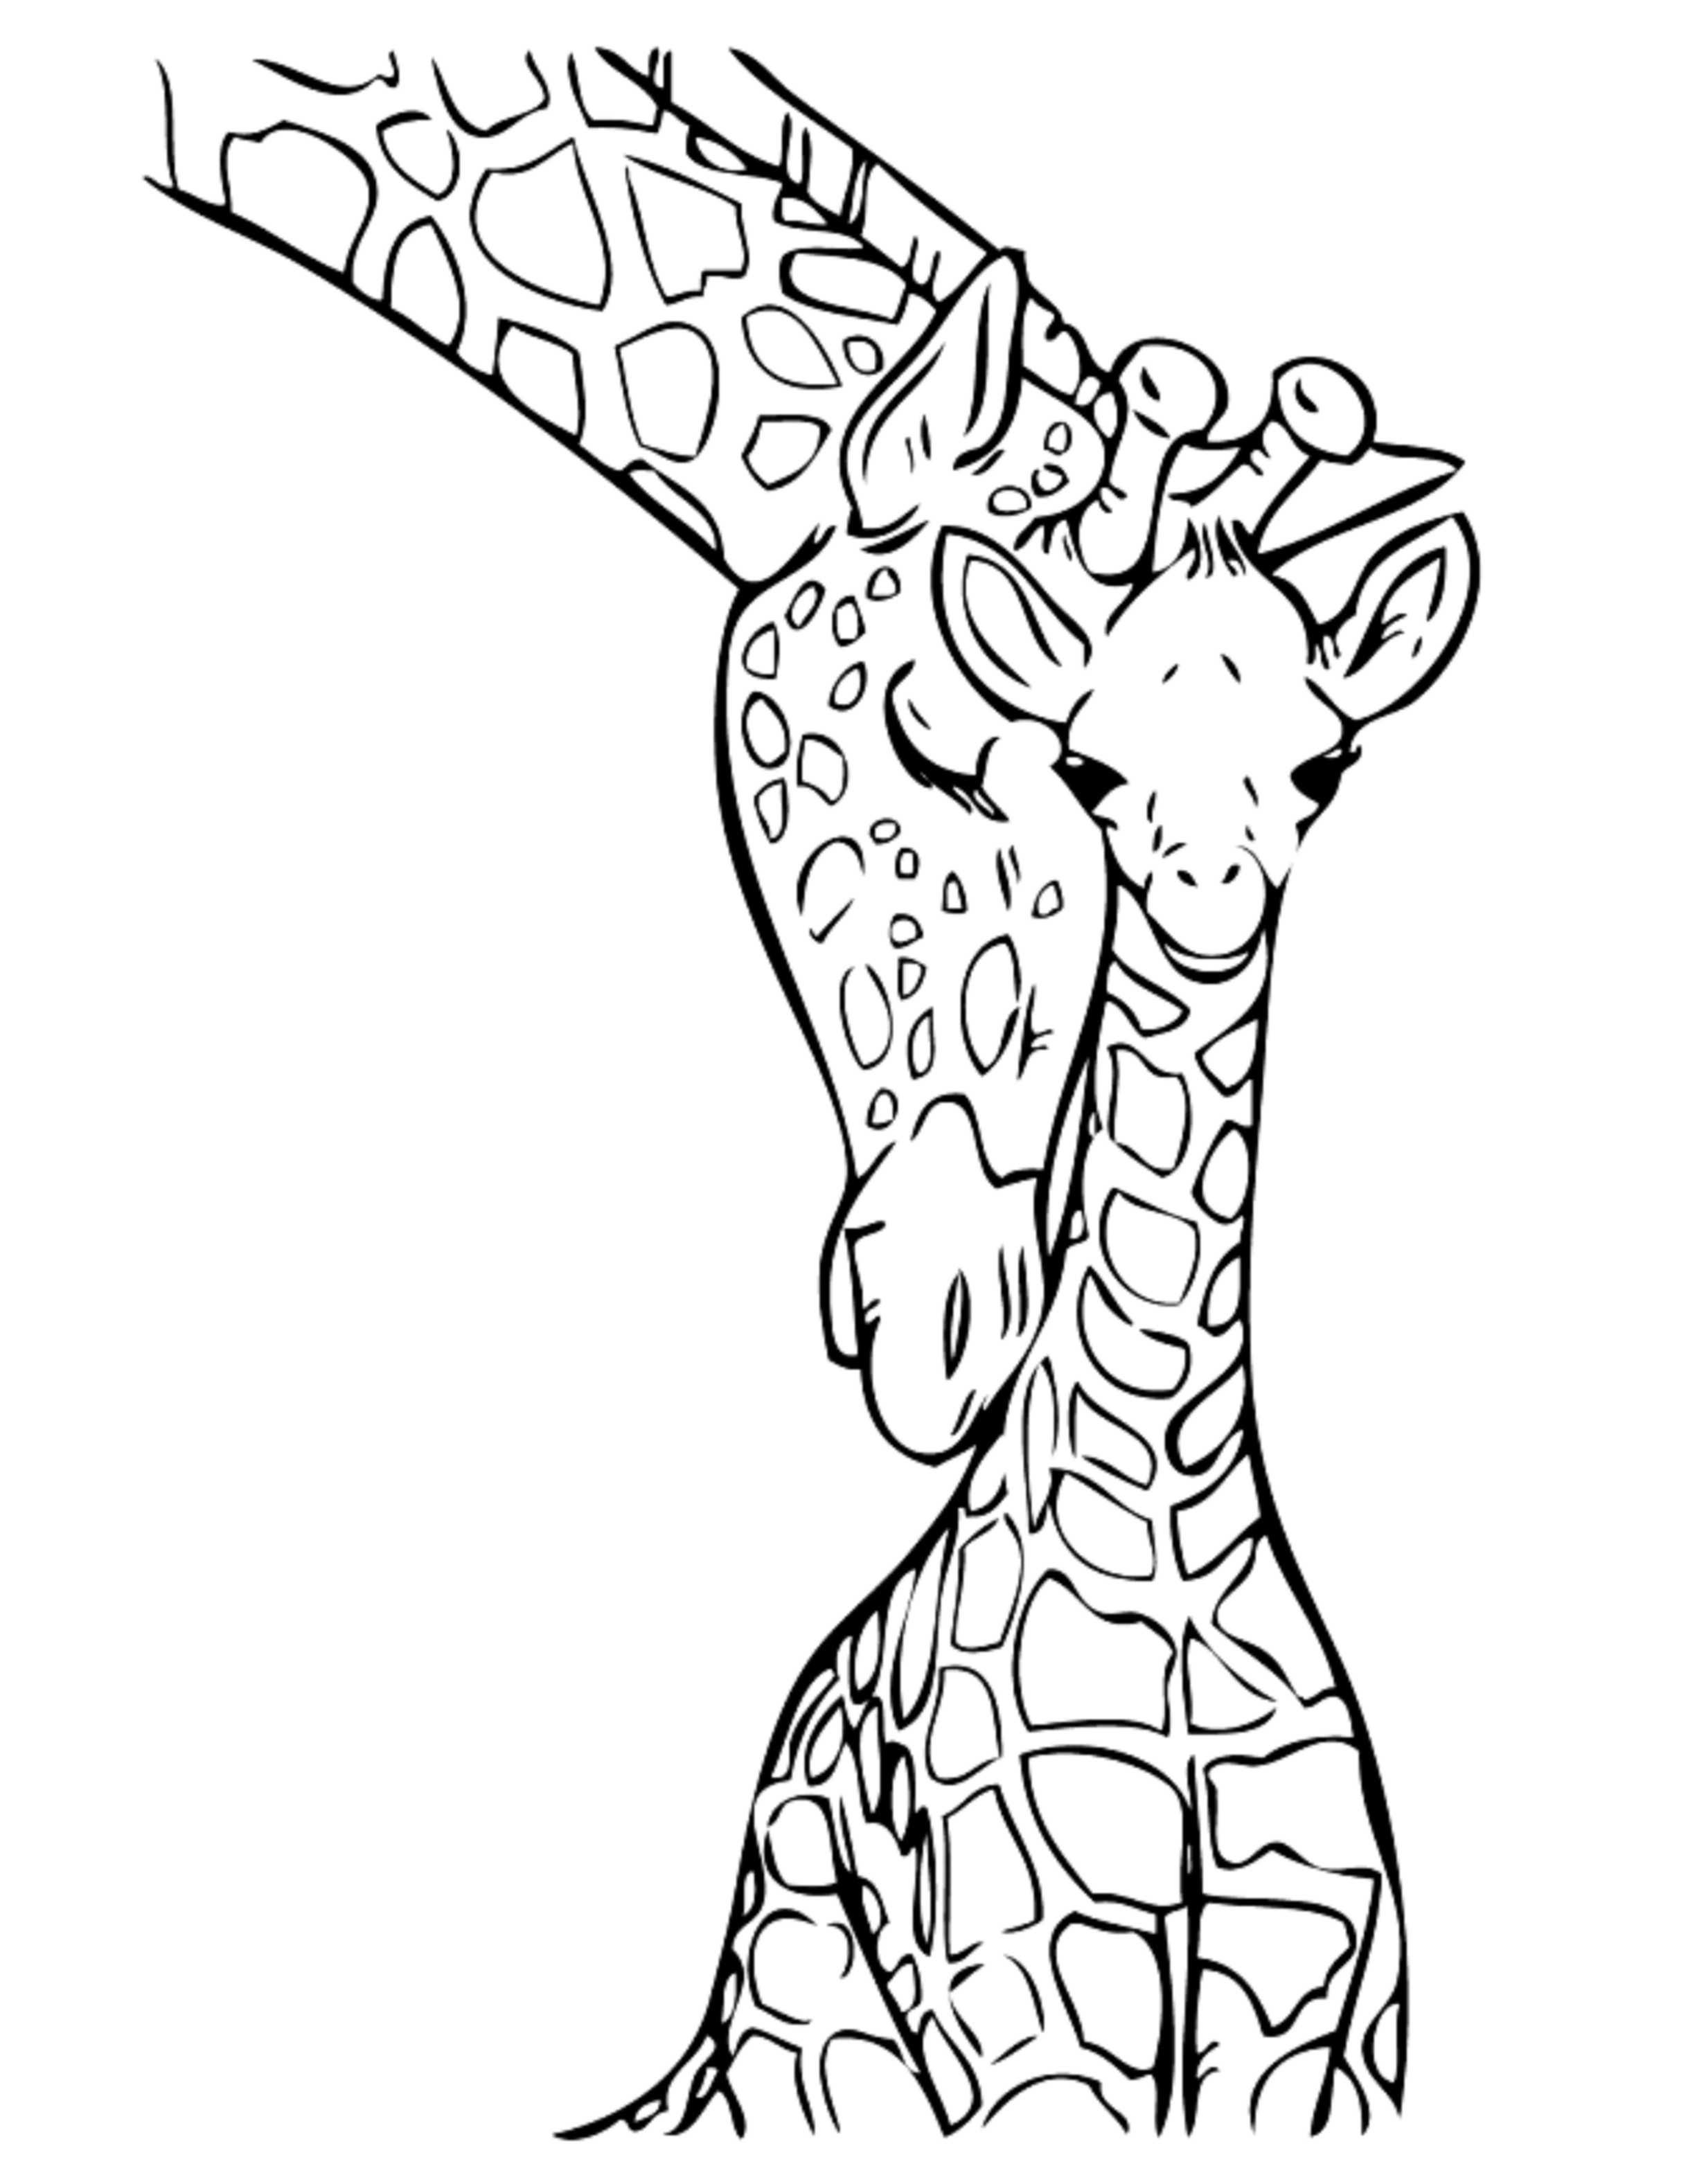 2437x3154 Giraffe Coloring Pages Awesome Cat Coloring Pages Best Coloring